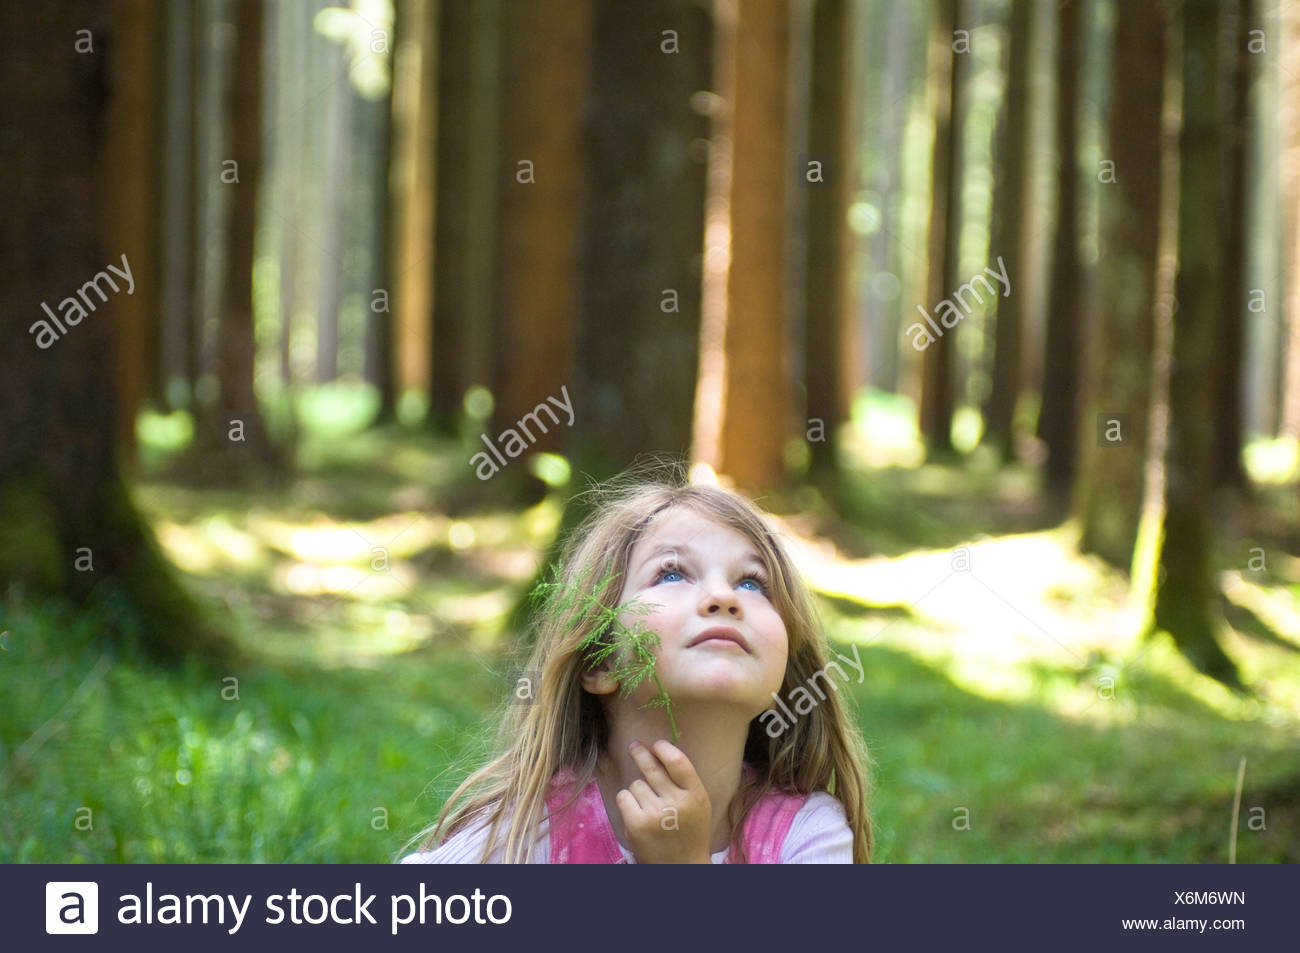 portrait of young girl standing in forest - Stock Image